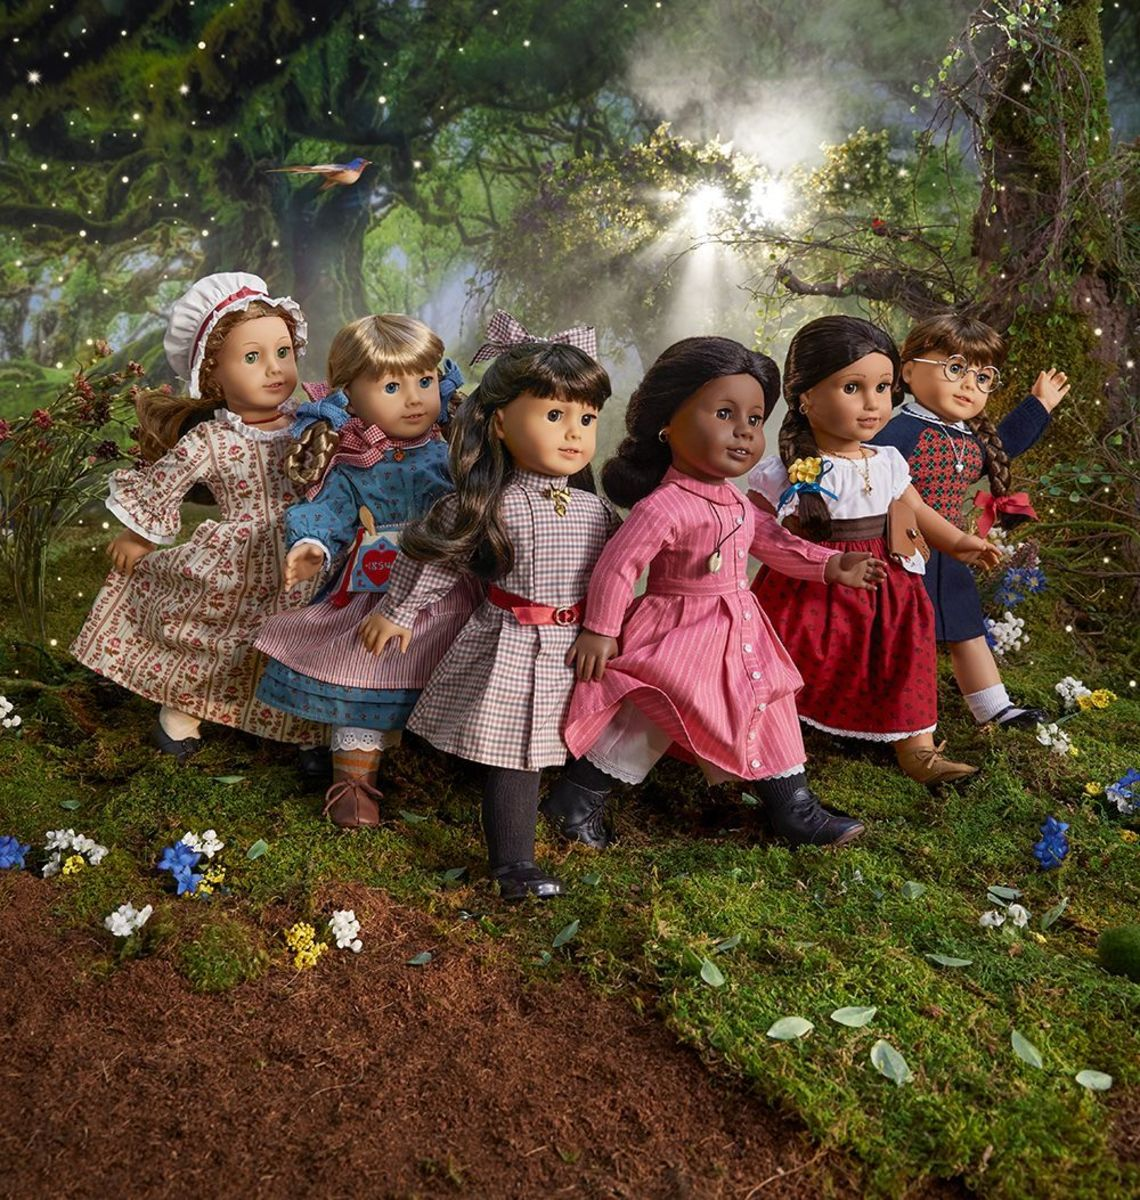 A promotional photo of the 35th Anniversary Collection showing the first 6 AG dolls in their Classic Meet Outfits